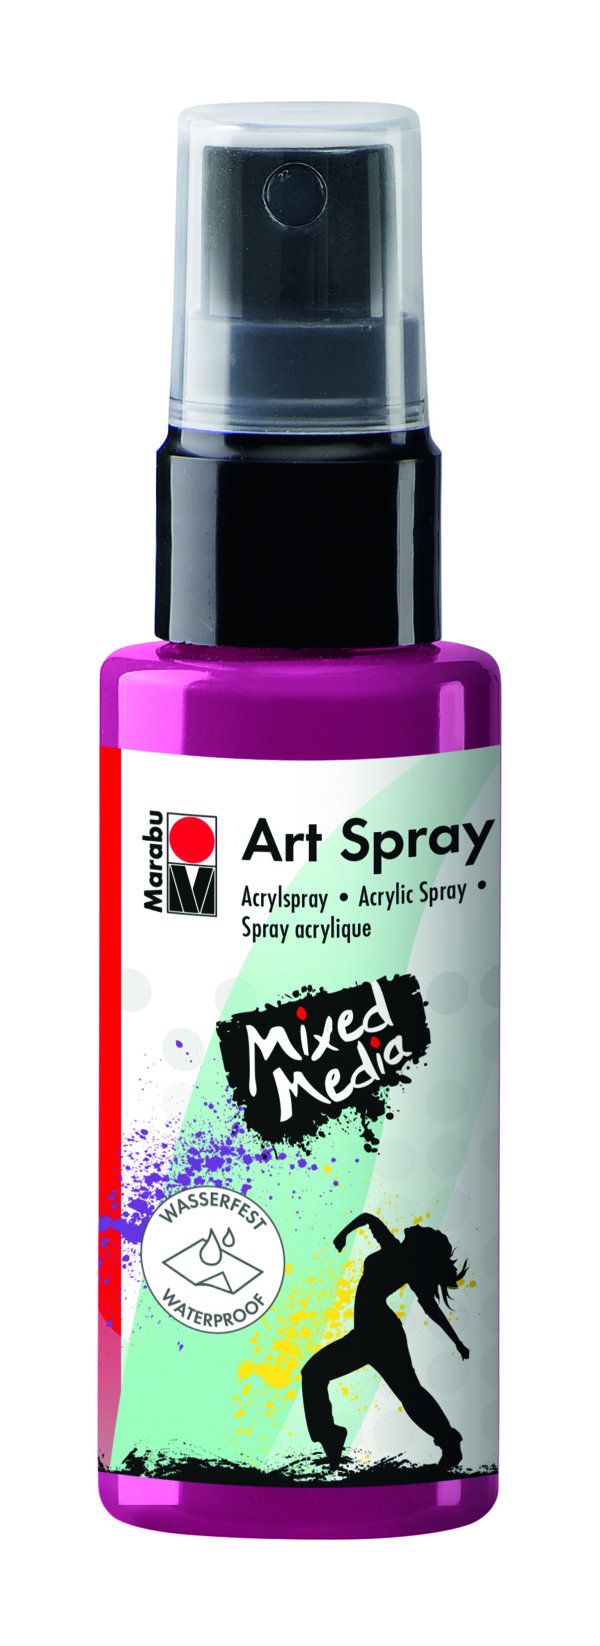 Marabu Art Spray 005 Himbeere